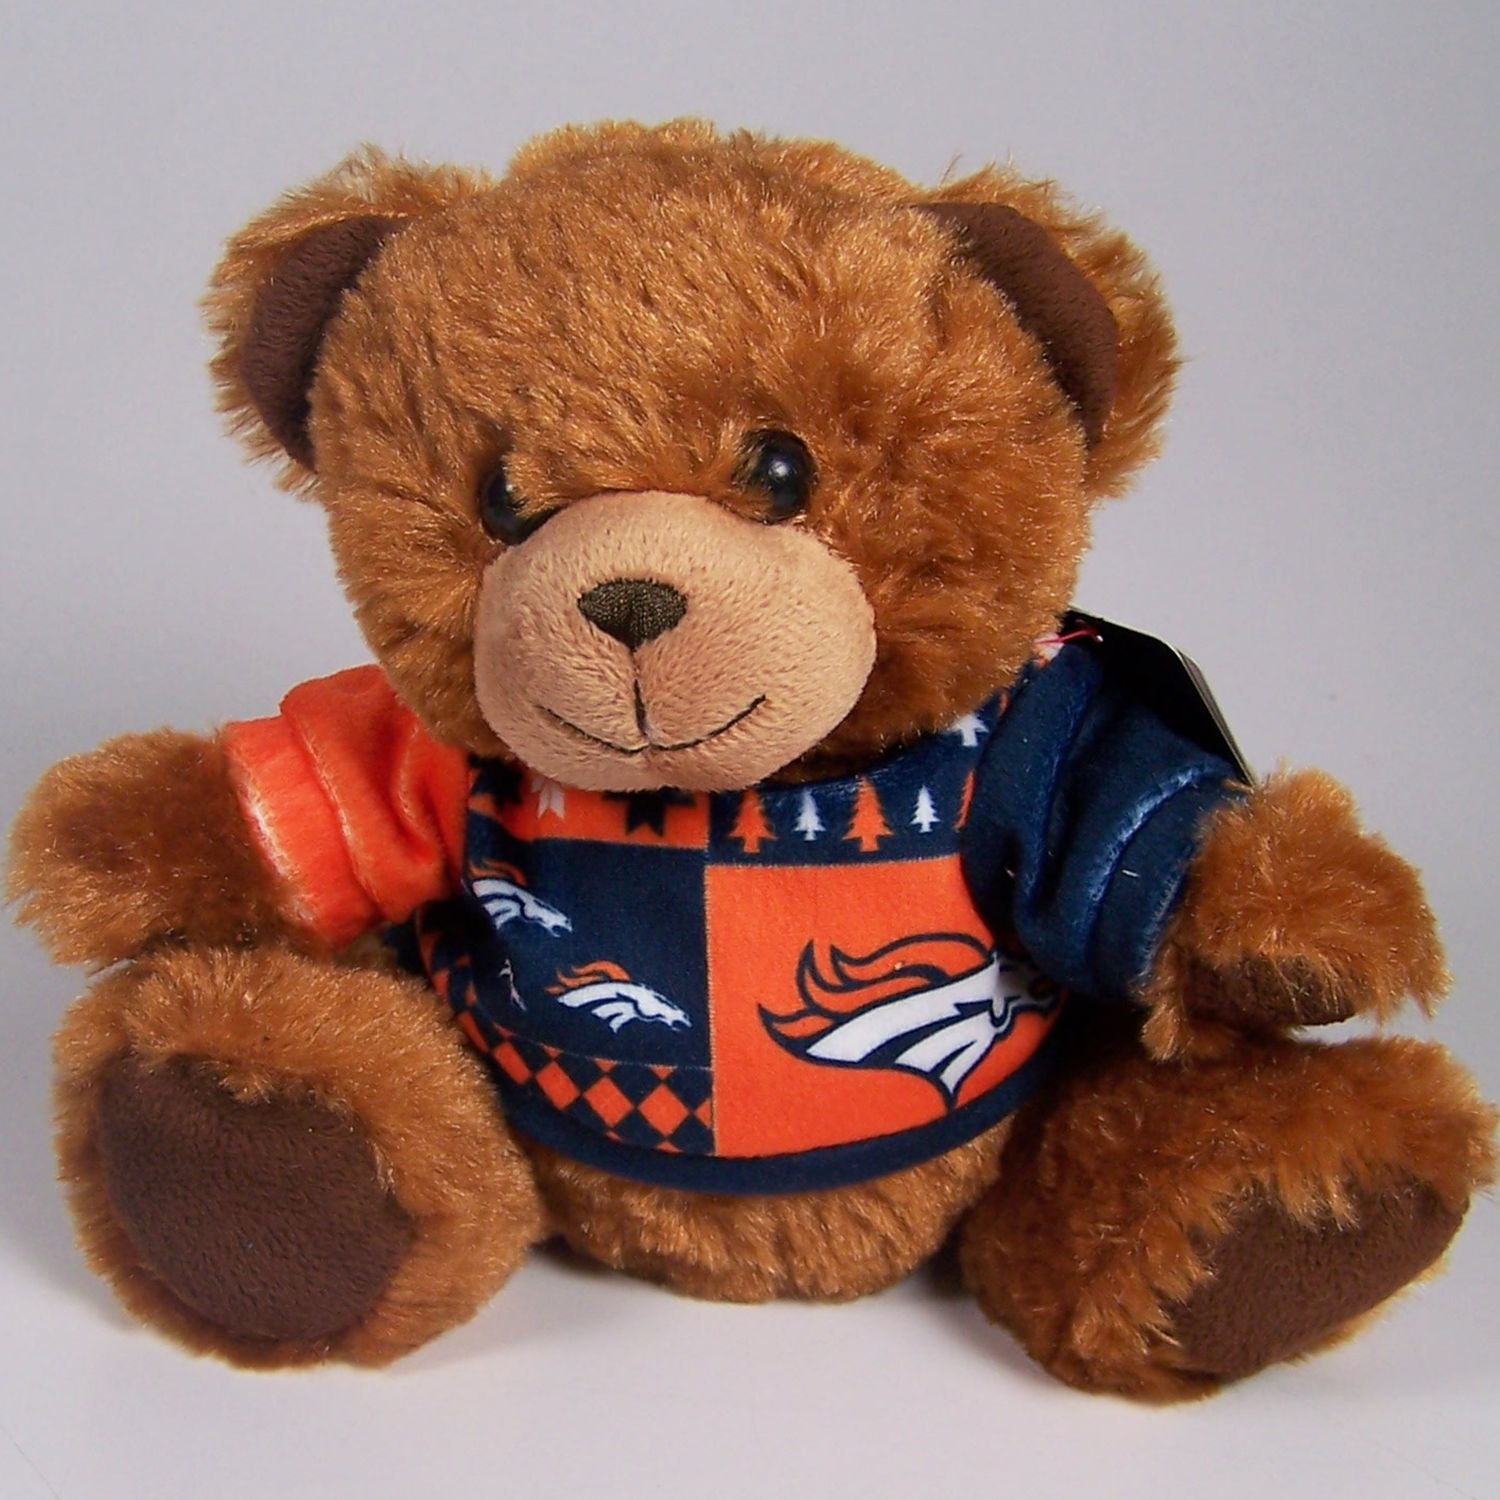 Denver Broncos Official NFL 8 inch  Ugly Sweater Plush Teddy Bear by Forever Collectibles